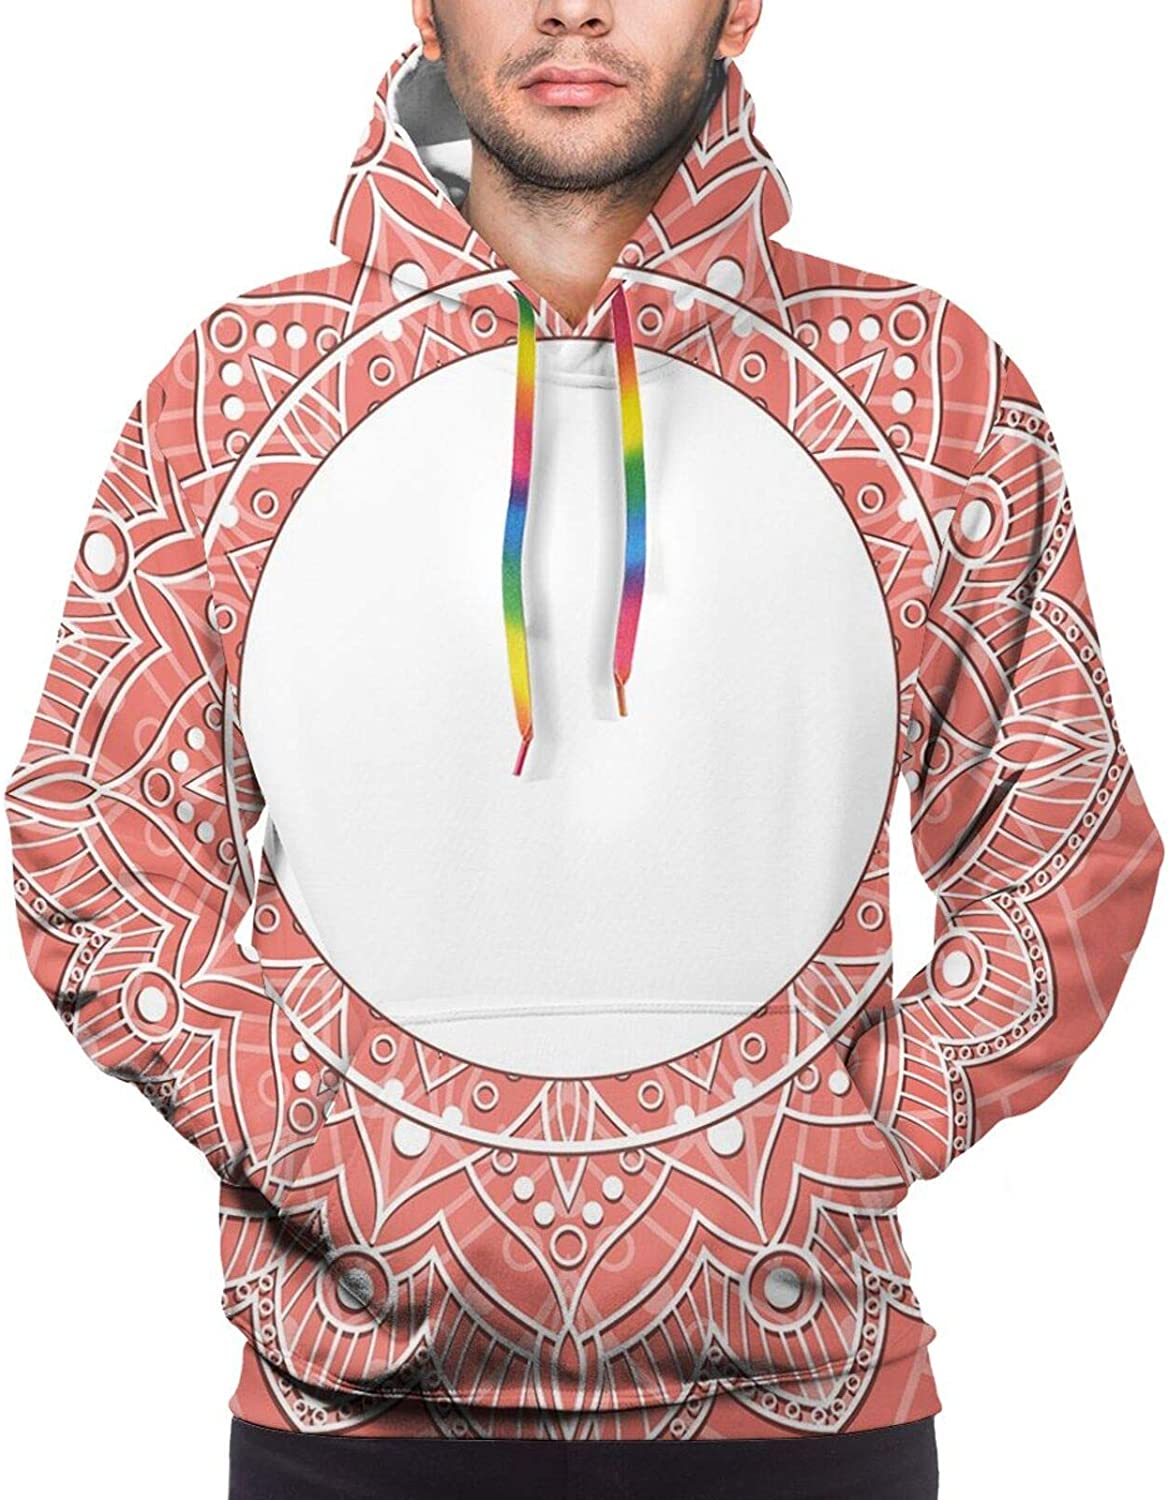 Men's Hoodies Sweatshirts,Lace Design with Lines and Circles Bridal Inspirations with Soft Colored Background